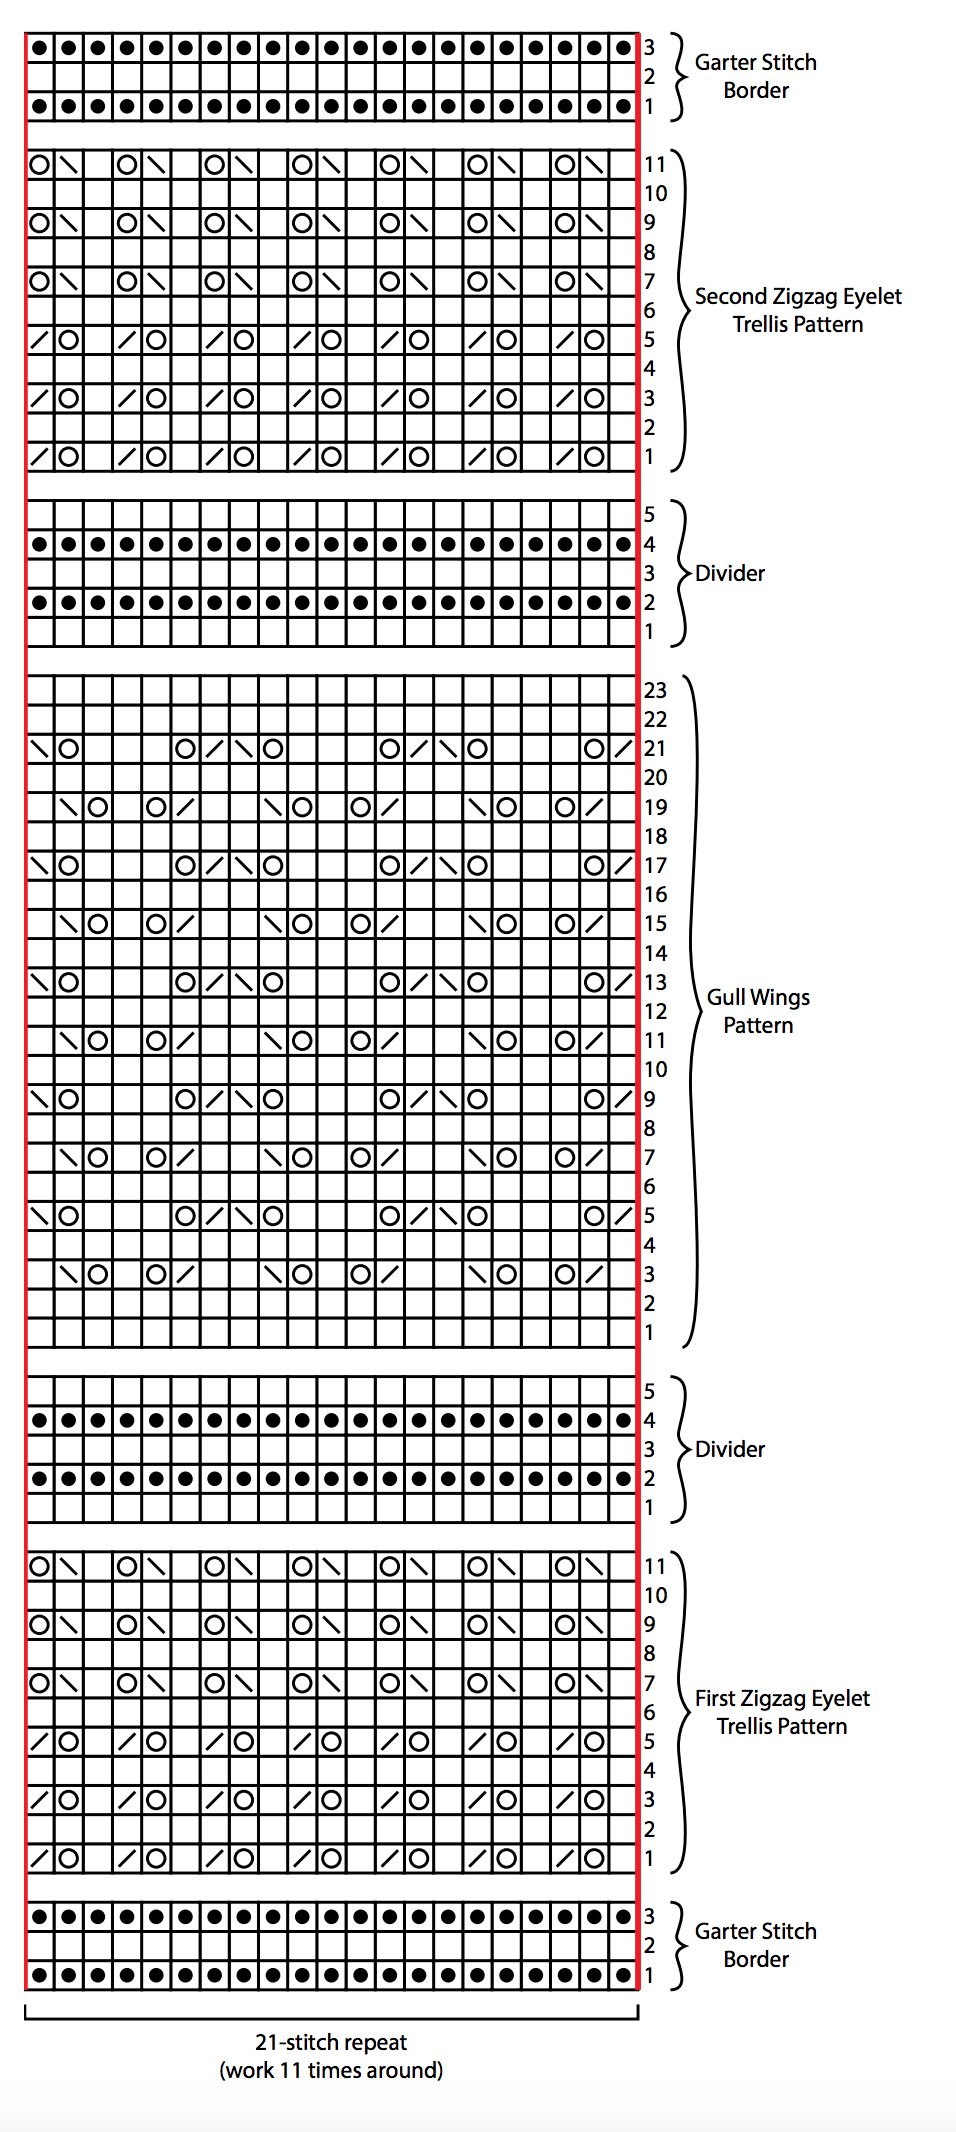 Guide to Reading Knitting Stitch Charts